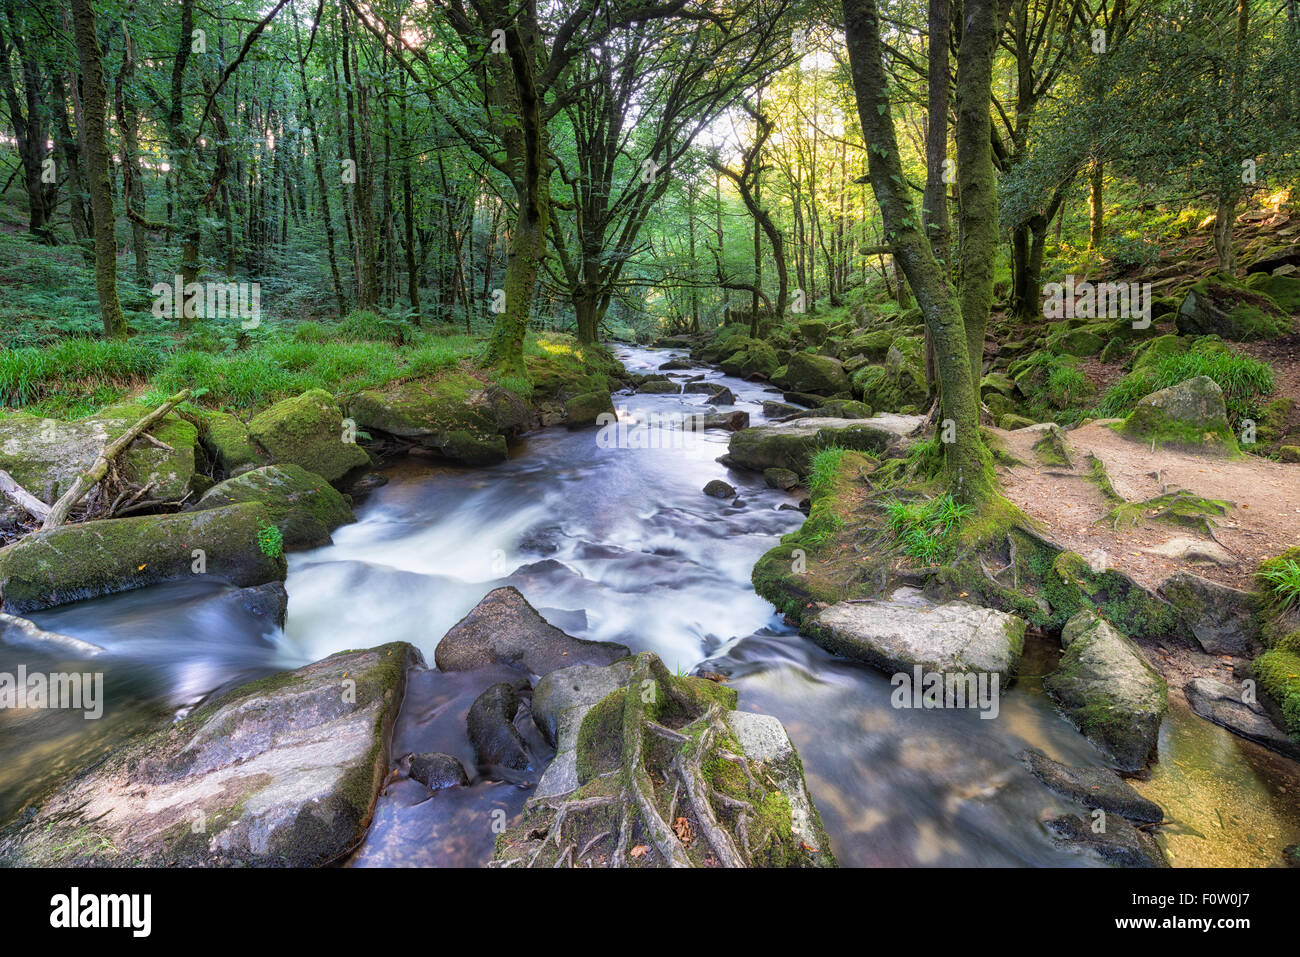 The river Fowey flowing over mossy rocks at Golitha Falls in Cornwall - Stock Image